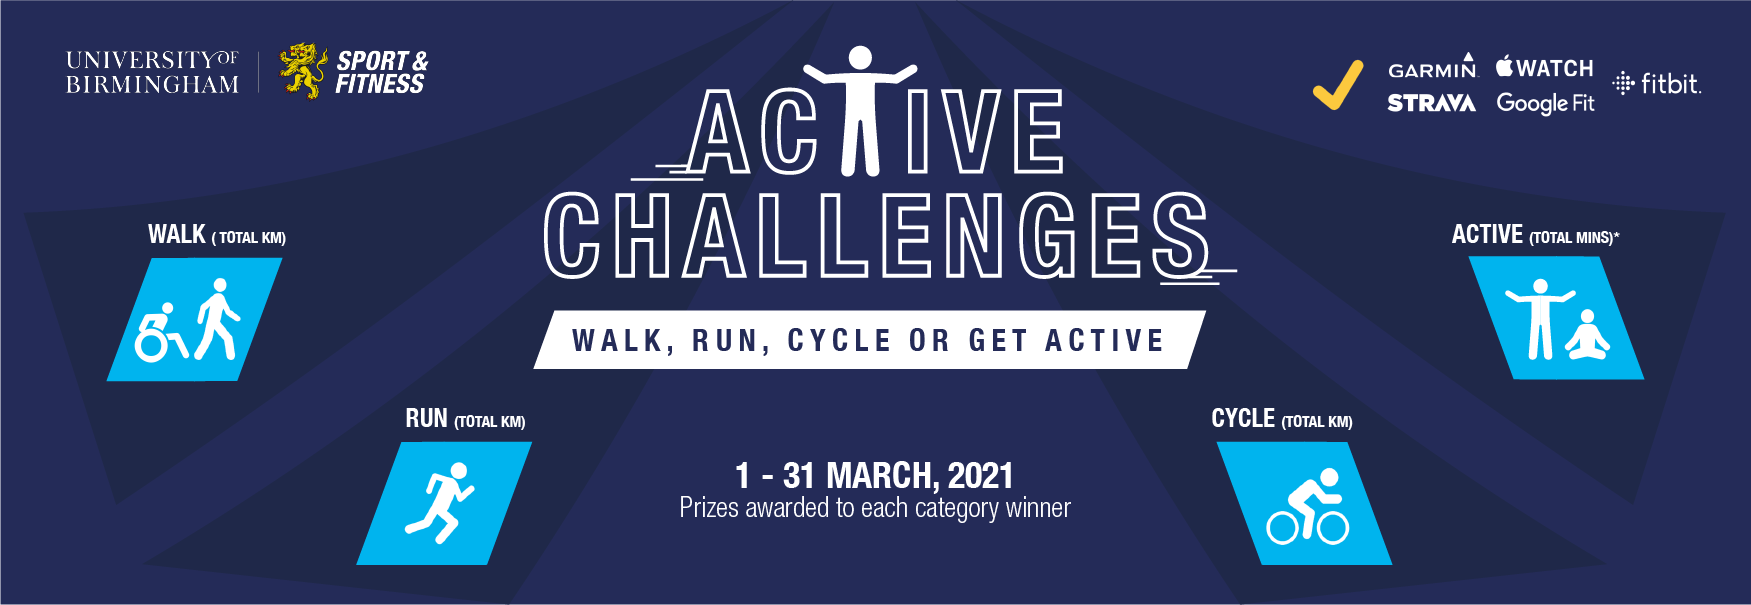 Get moving this March with our active challenges!